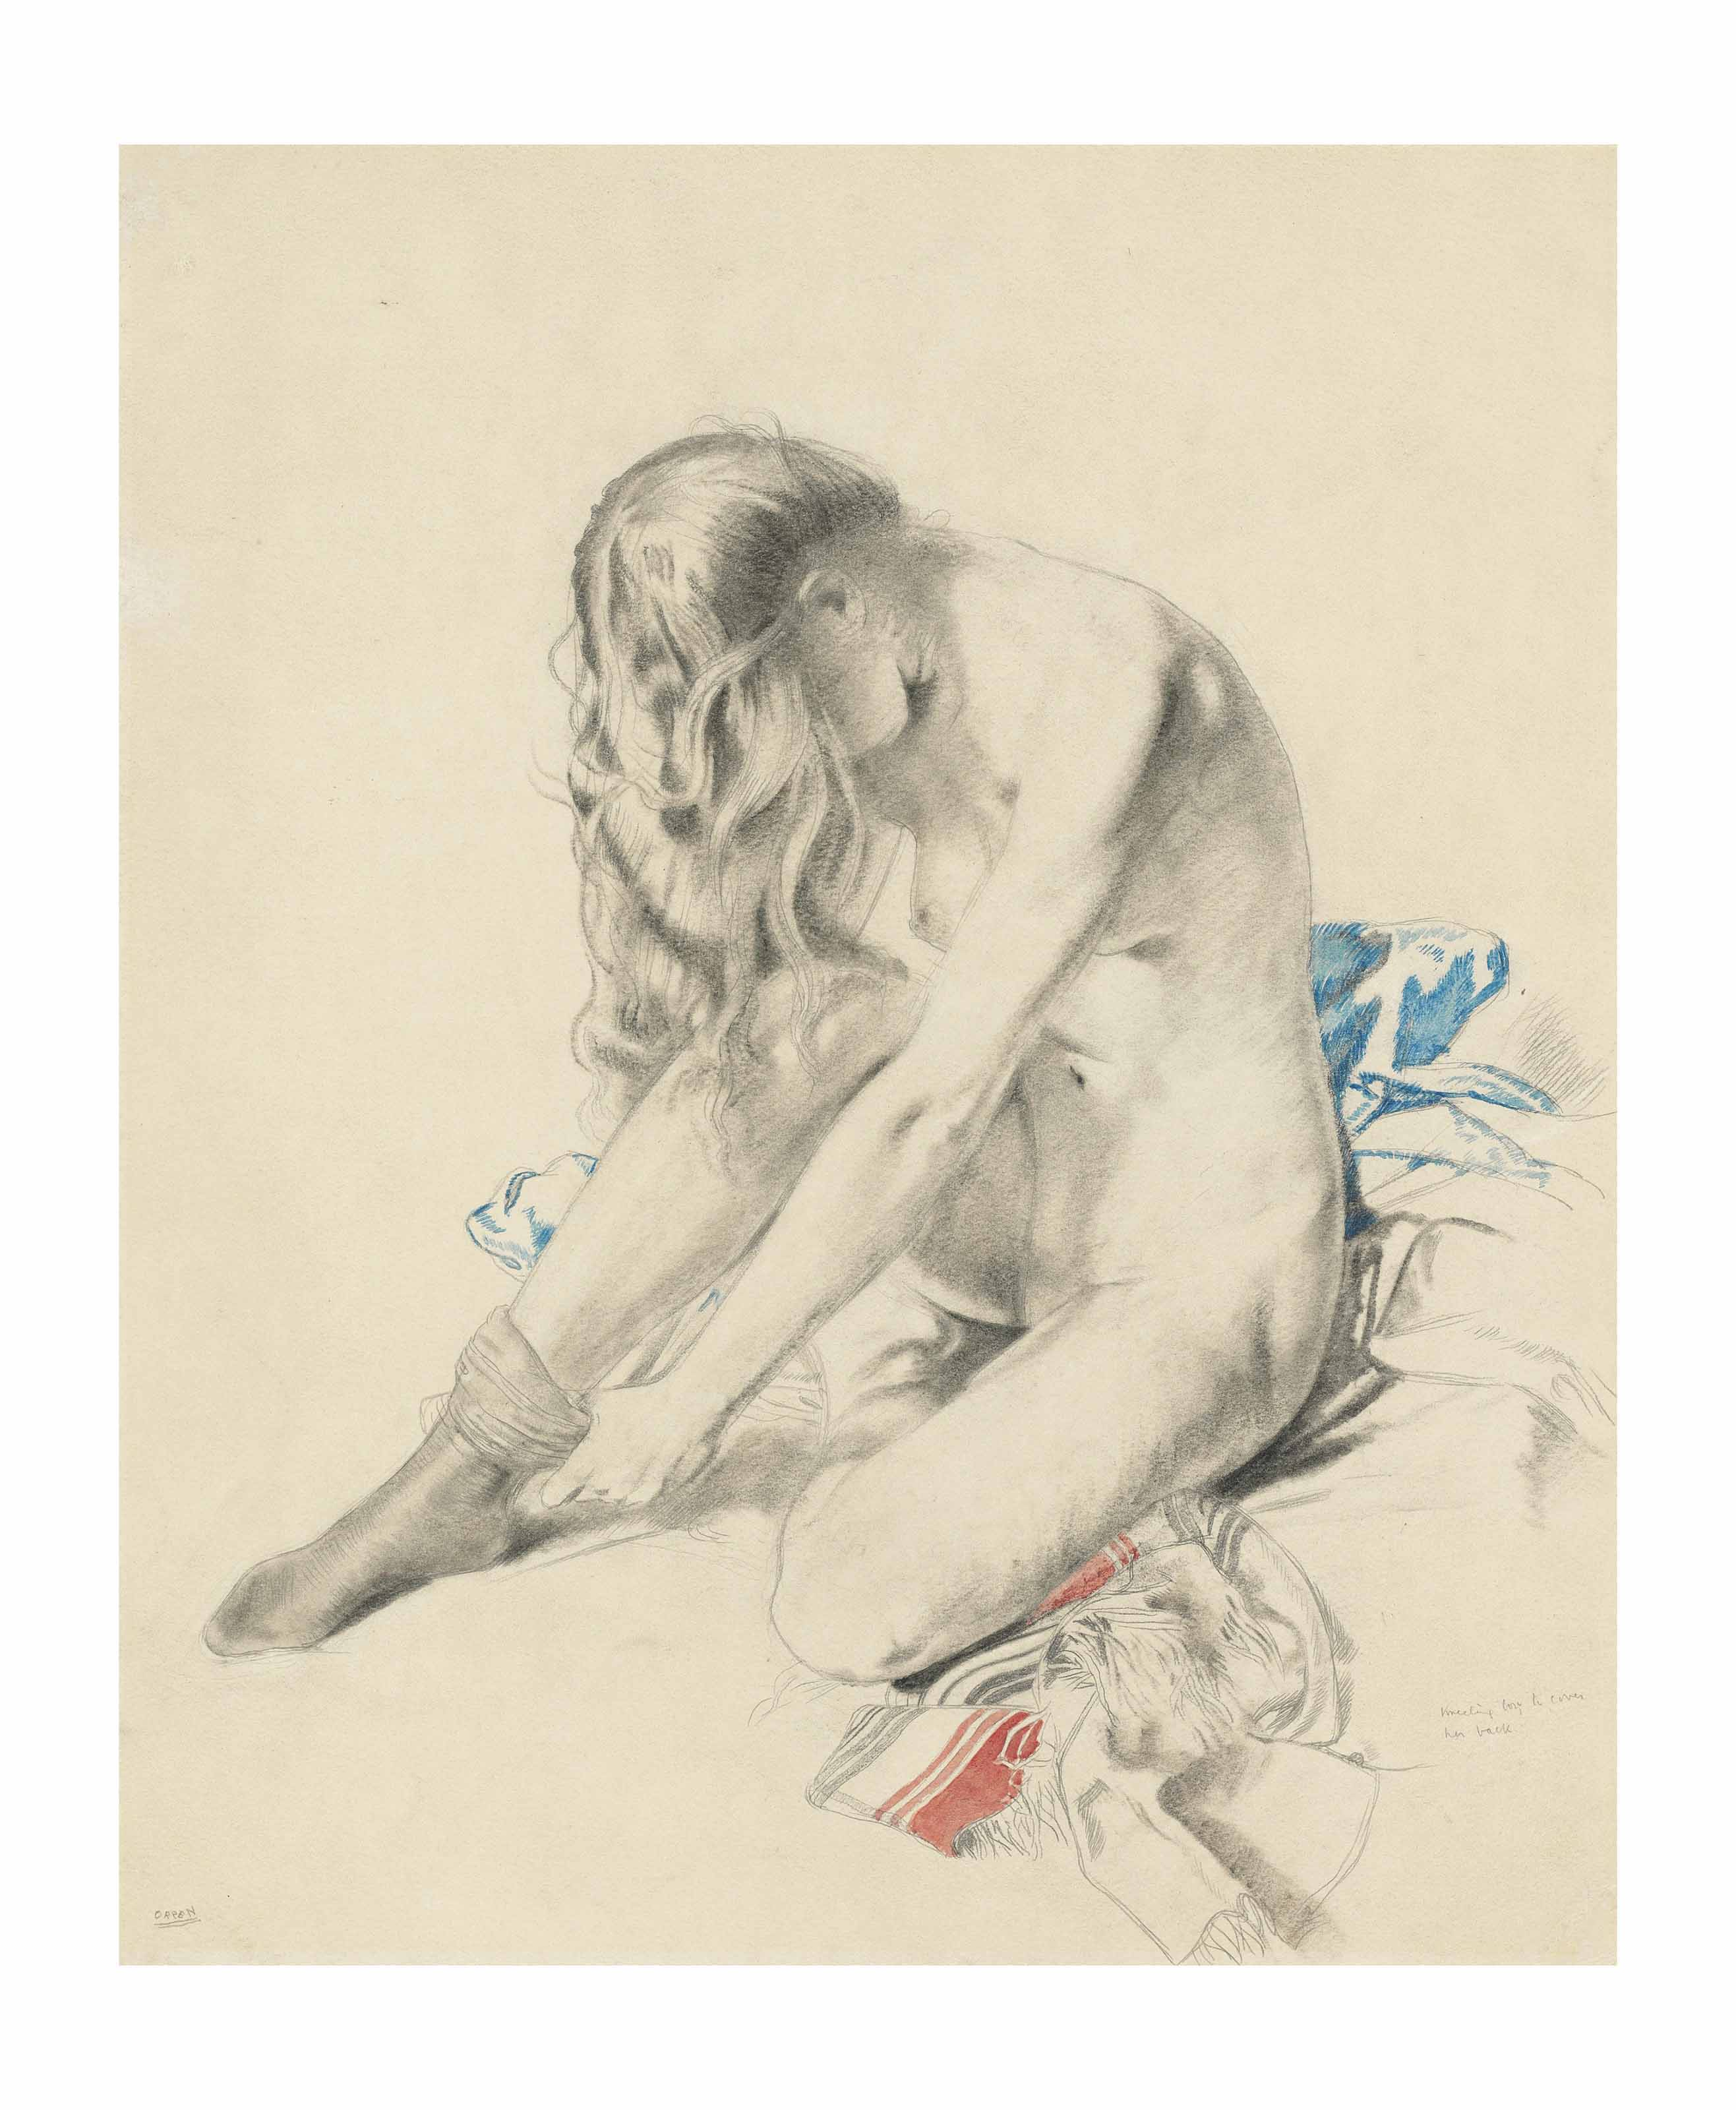 Study for Nude Pattern, The Holy Well